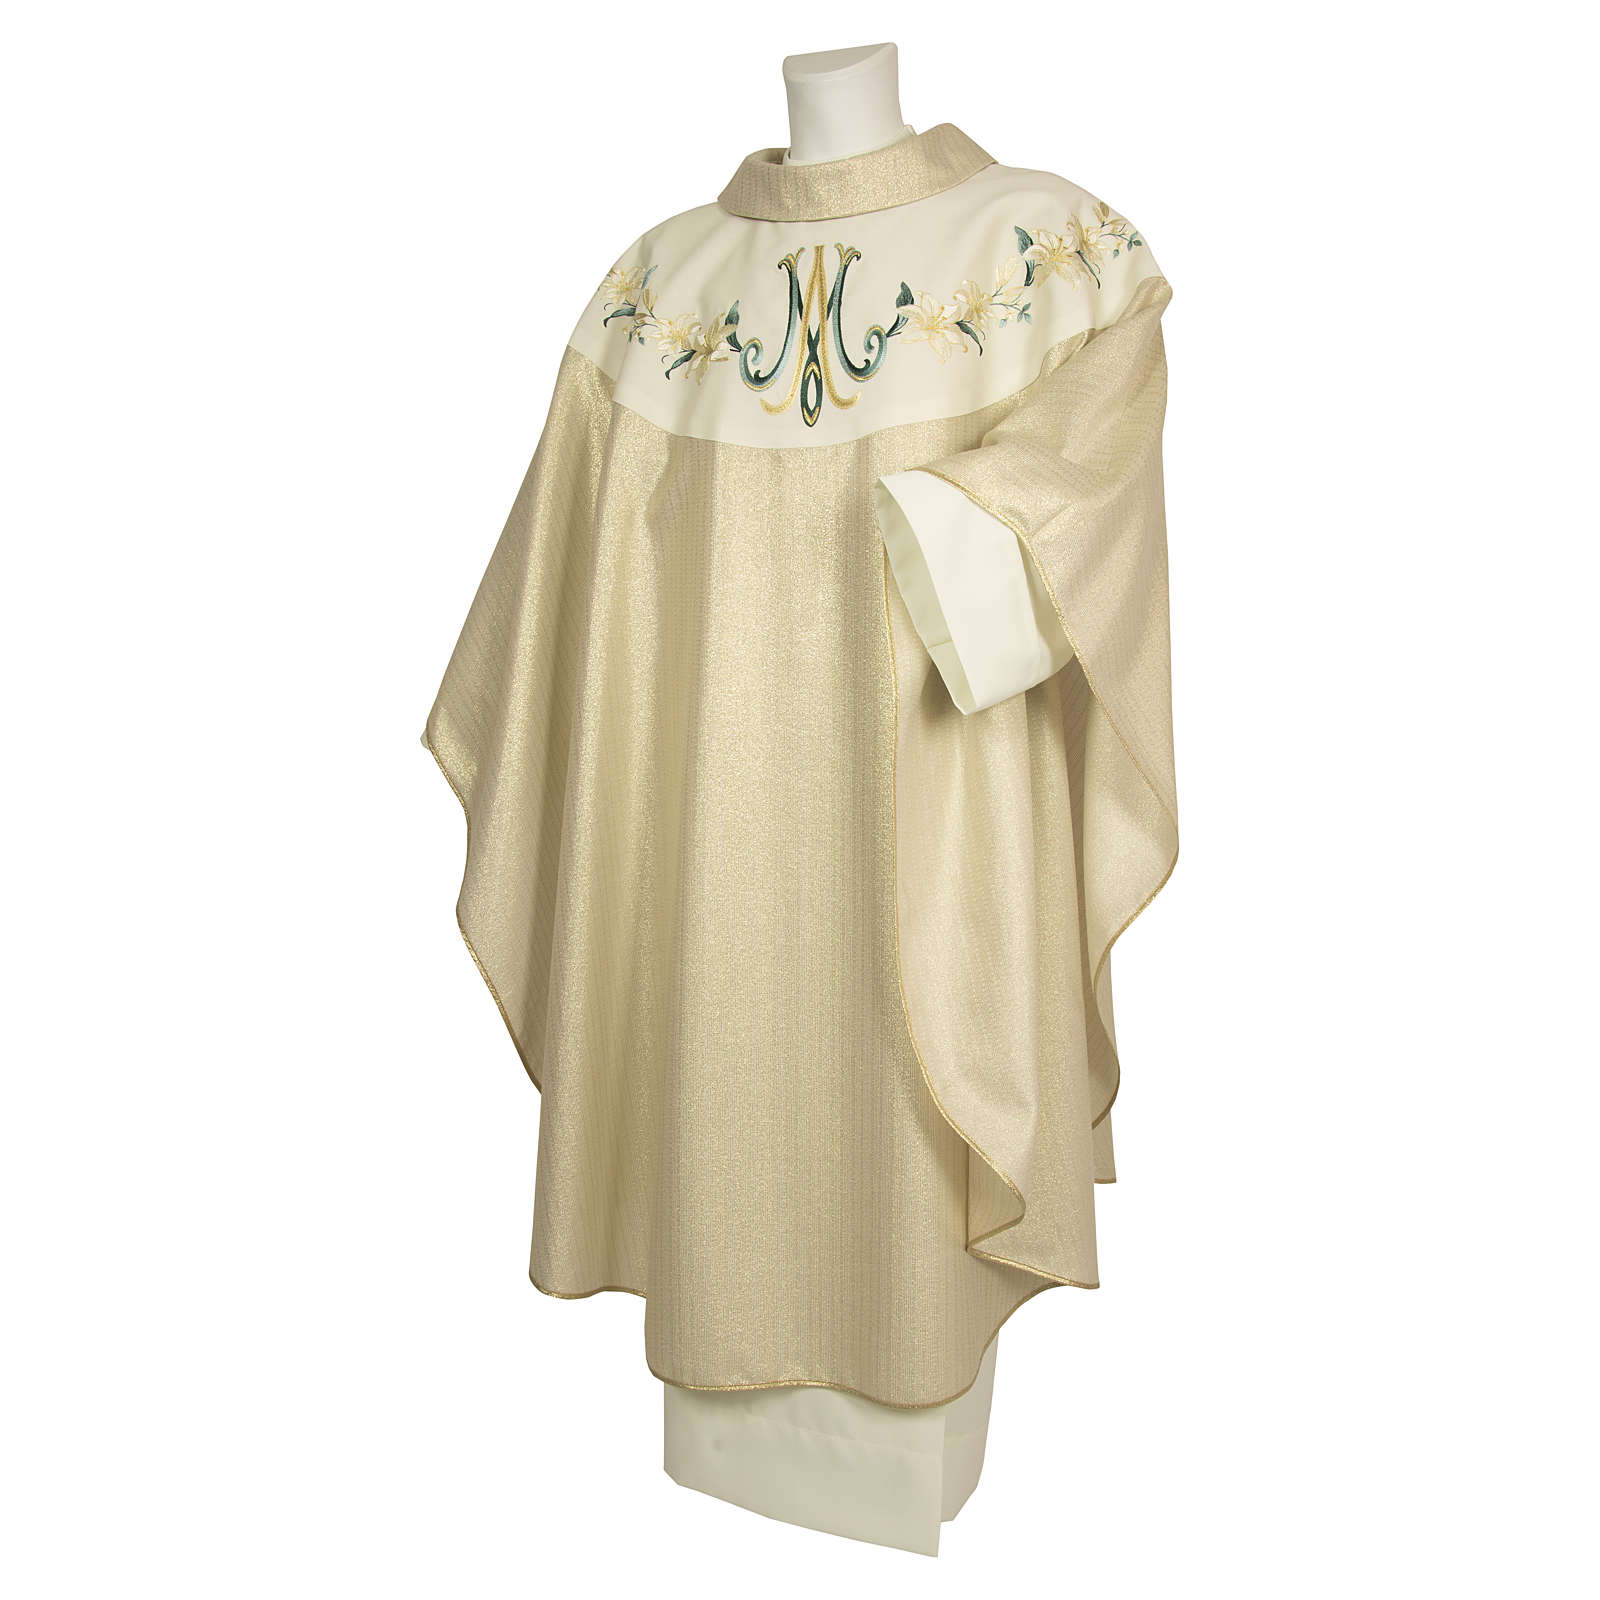 Chasuble 100% wool Marian symbol with flower decorations 4